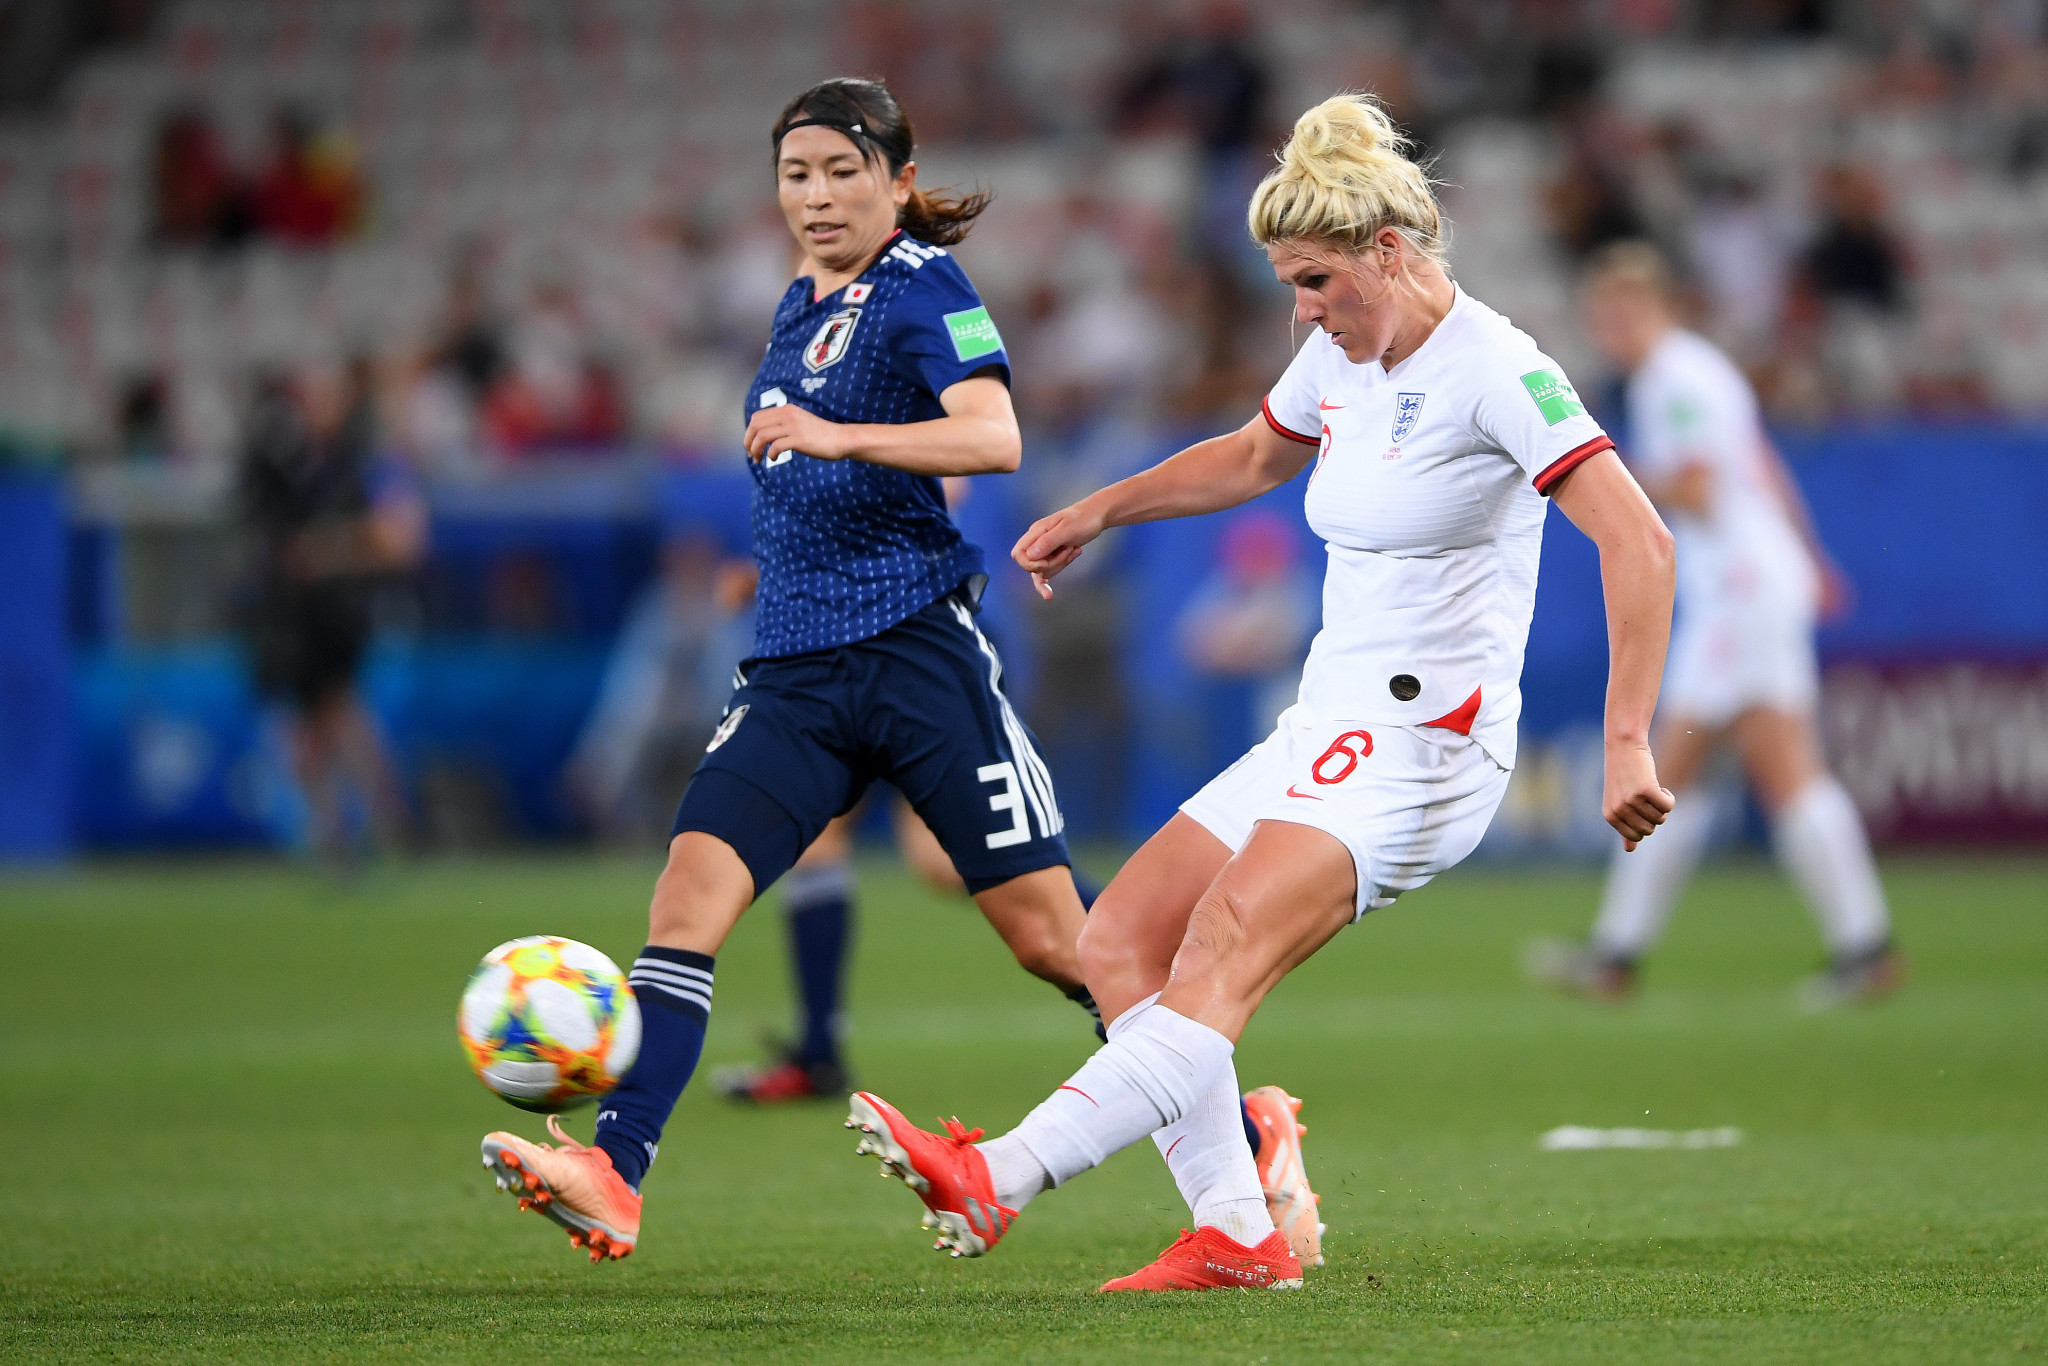 England beat Japan in a rematch of the 2015 FIFA Women's World Cup semi-final ©Getty Images